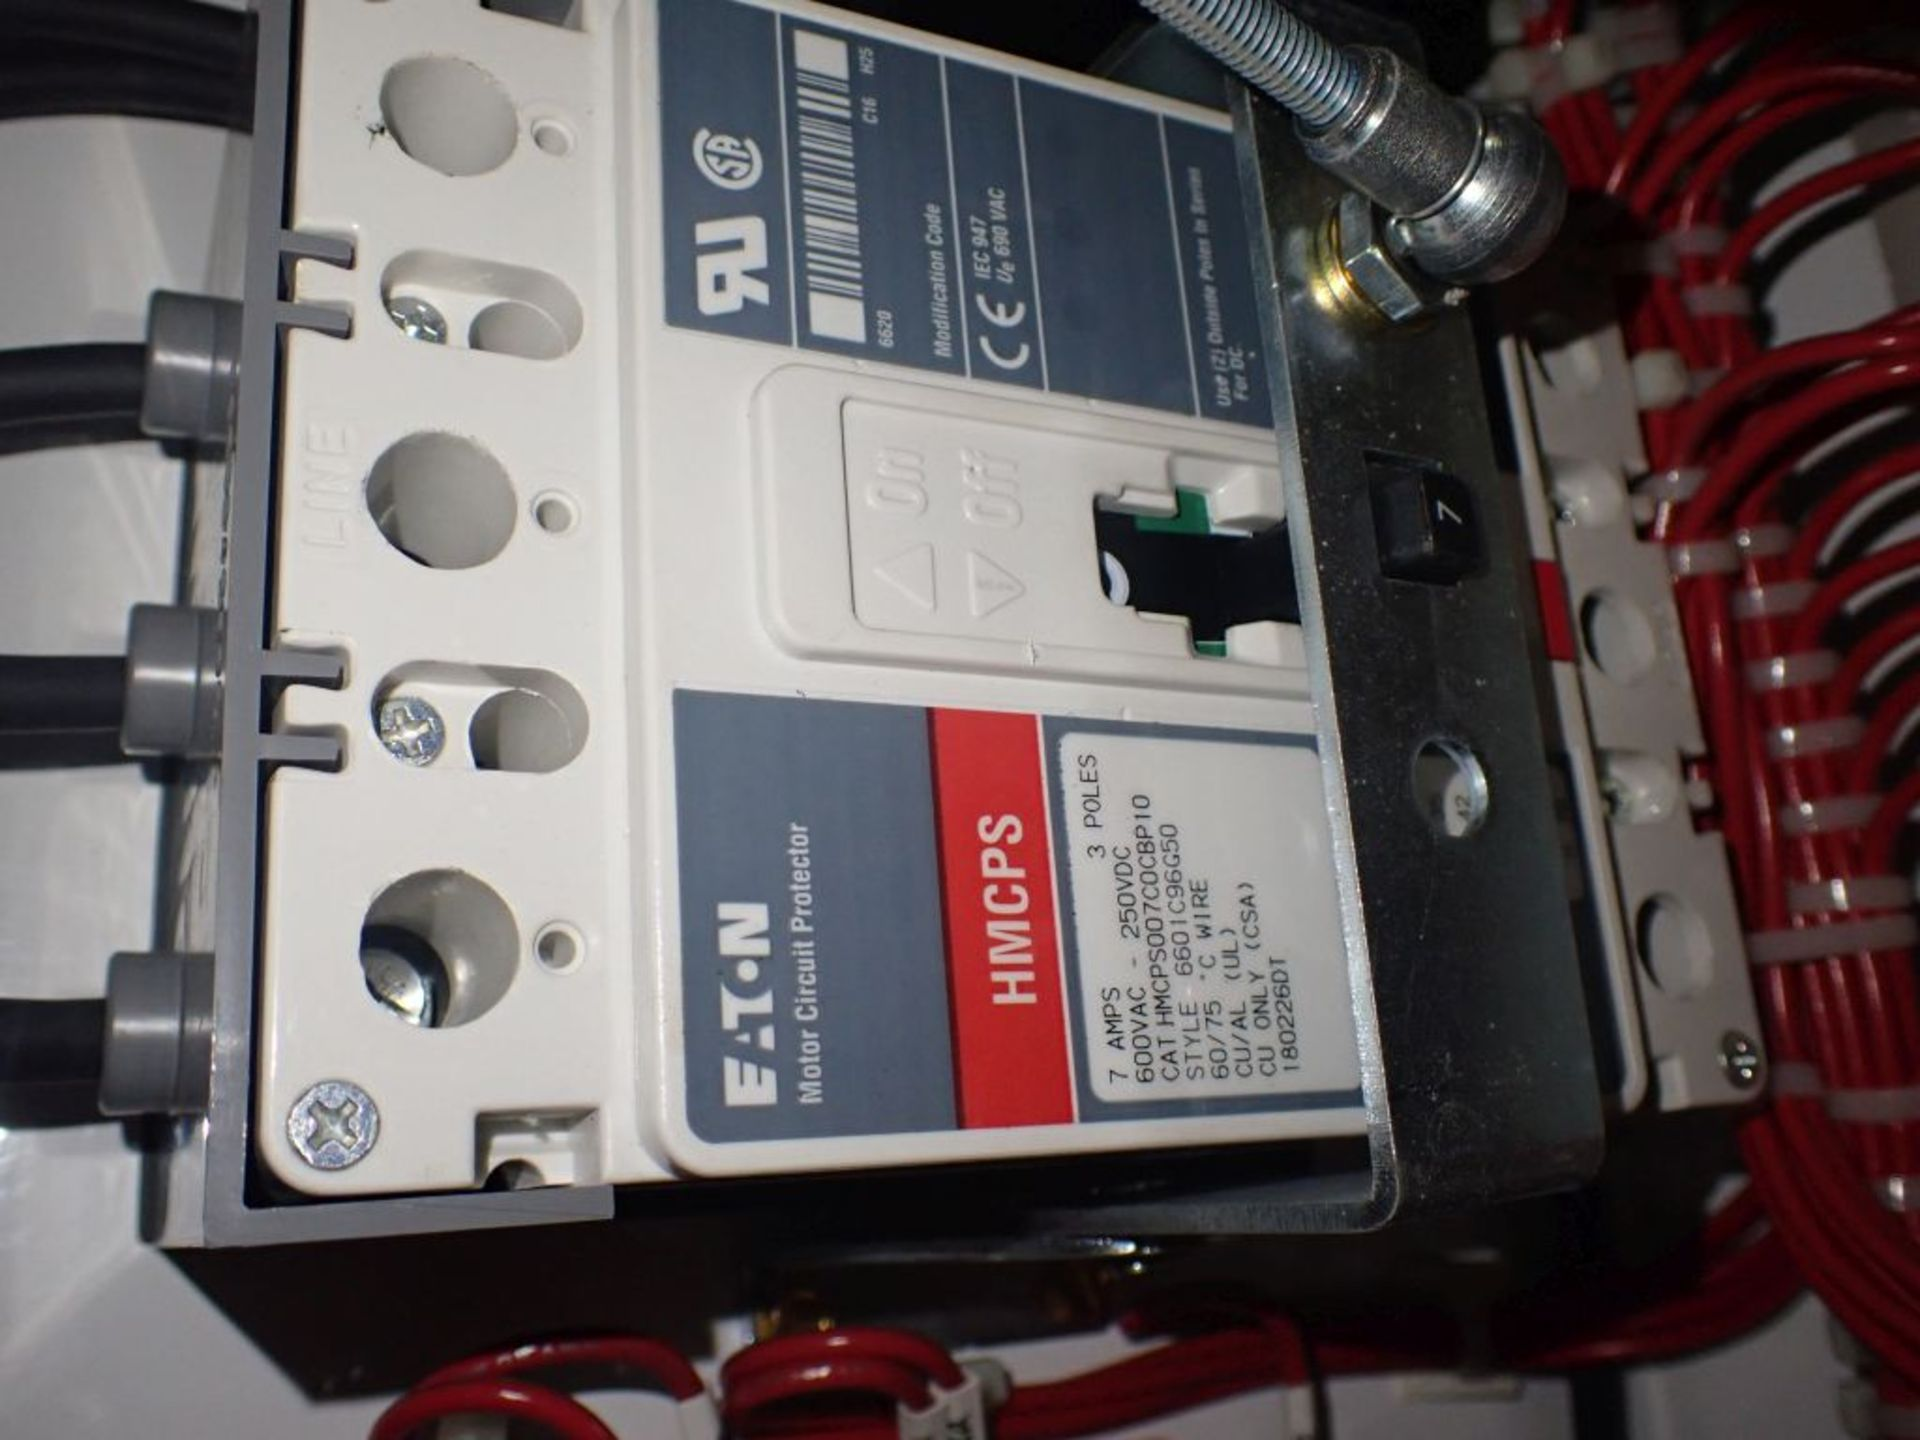 Eaton Freedom 2100 Series Motor Control Center | (2) F206-7A-10HP; (3) F206-15A-10HP; (1) FDRB-100A; - Image 48 of 87